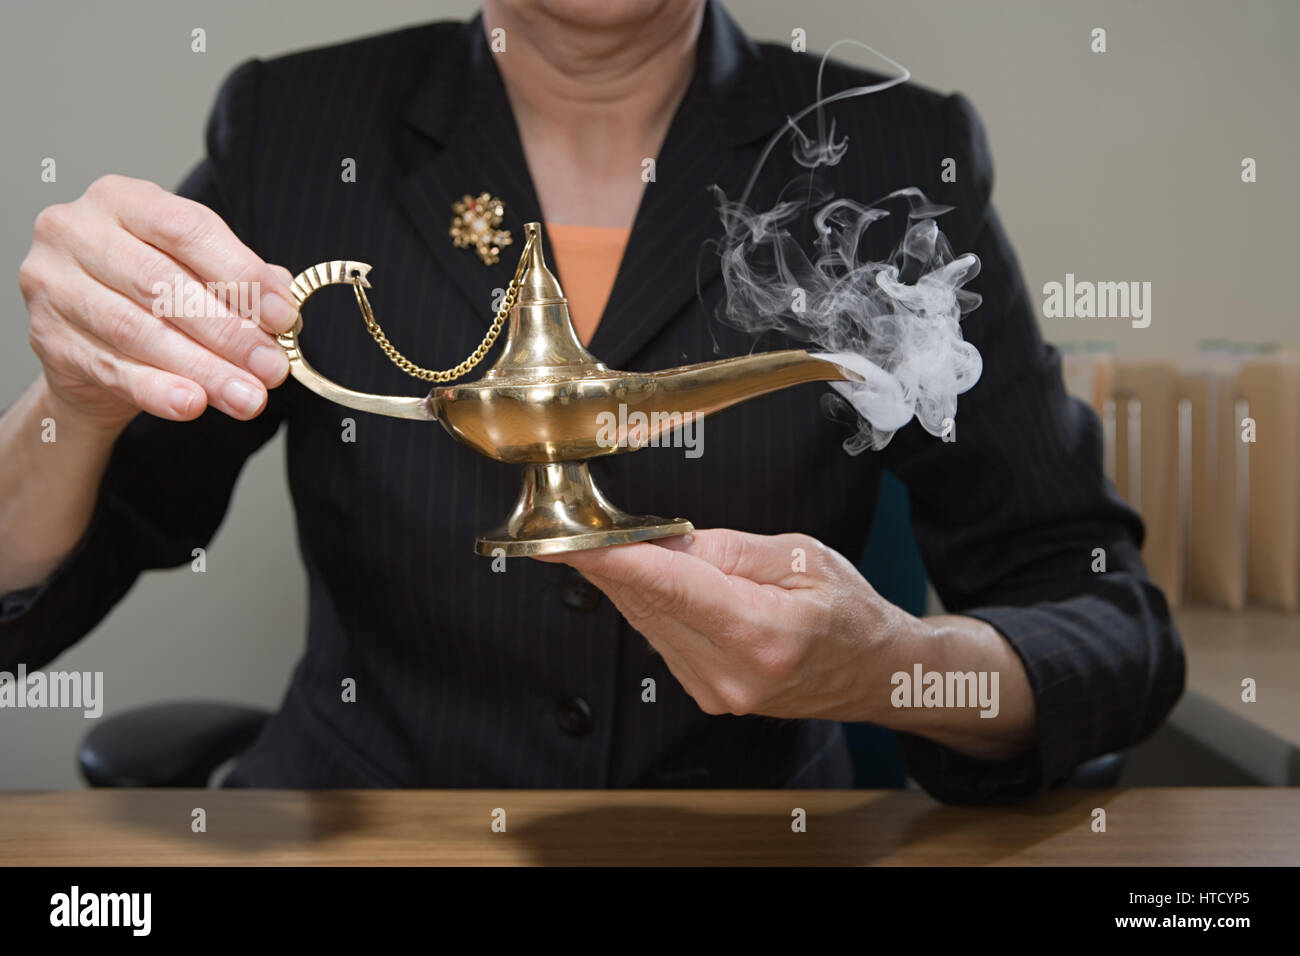 Genie lamp stock photos pictures royalty free genie - Stock Photo Woman Holding Genie Lamp